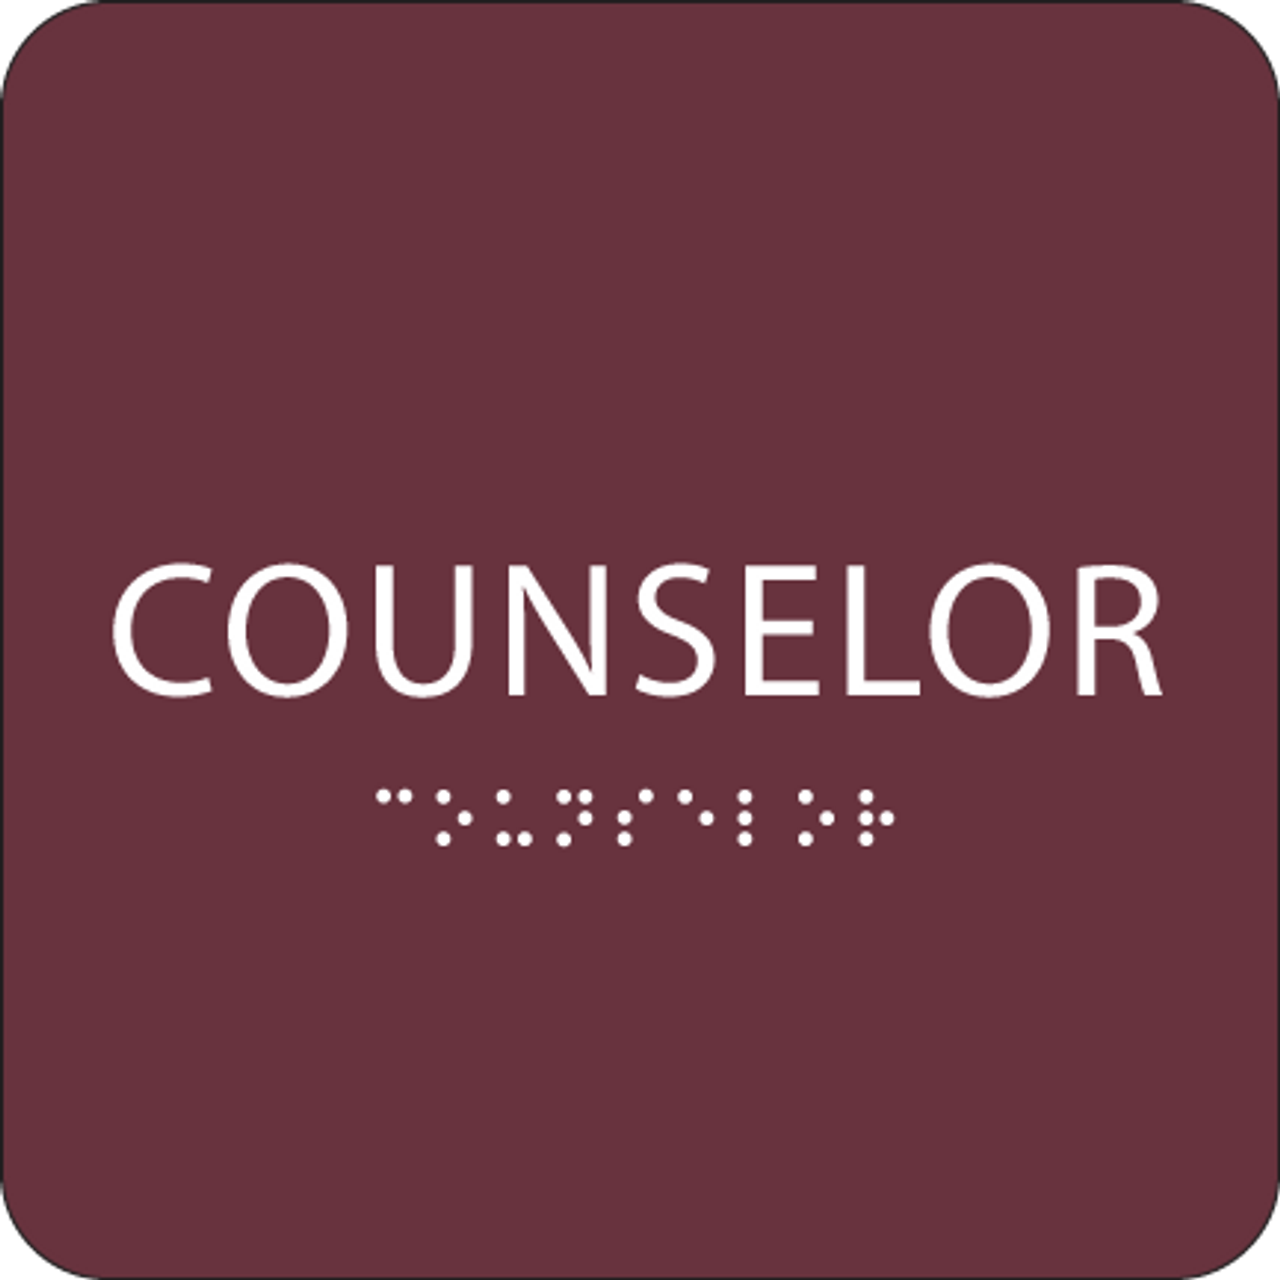 Burgundy Counselor ADA Sign